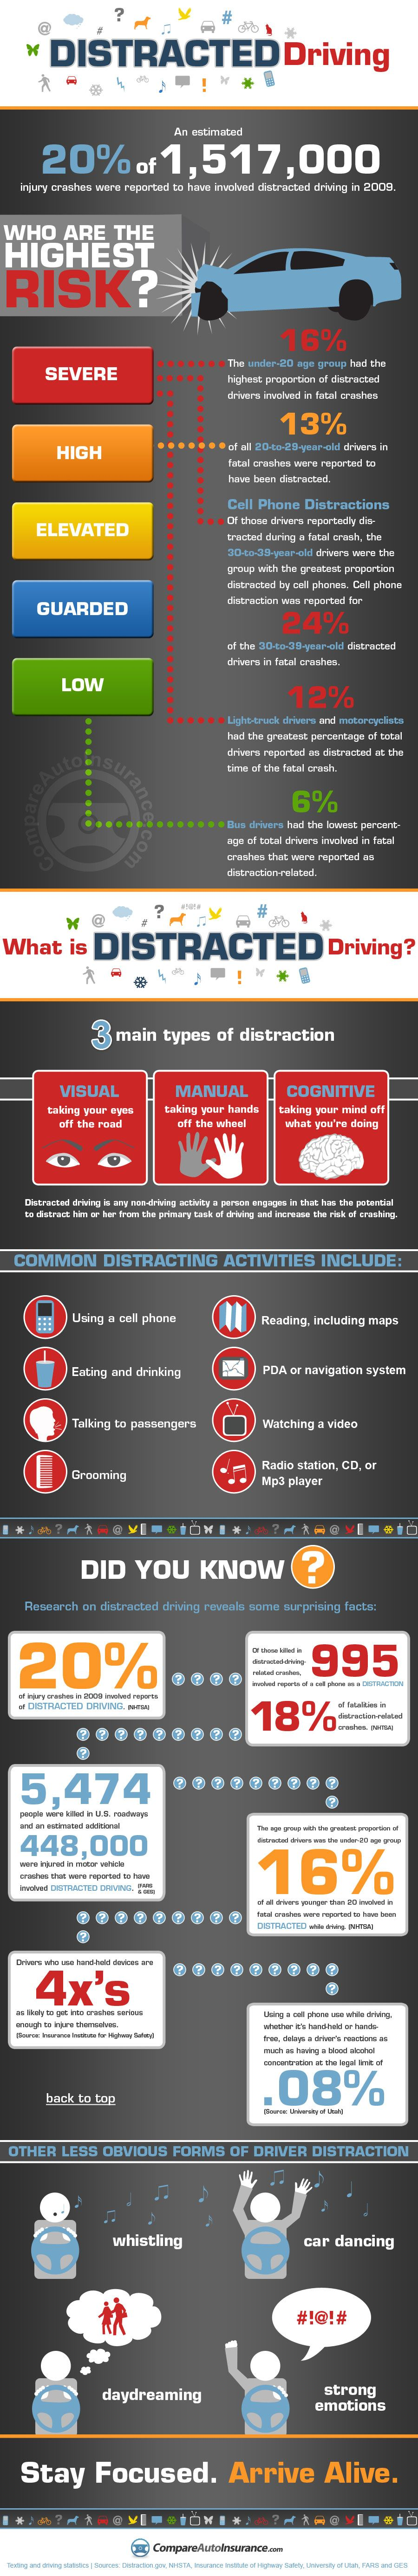 Distracted Driving Statistics. I am always surprised by